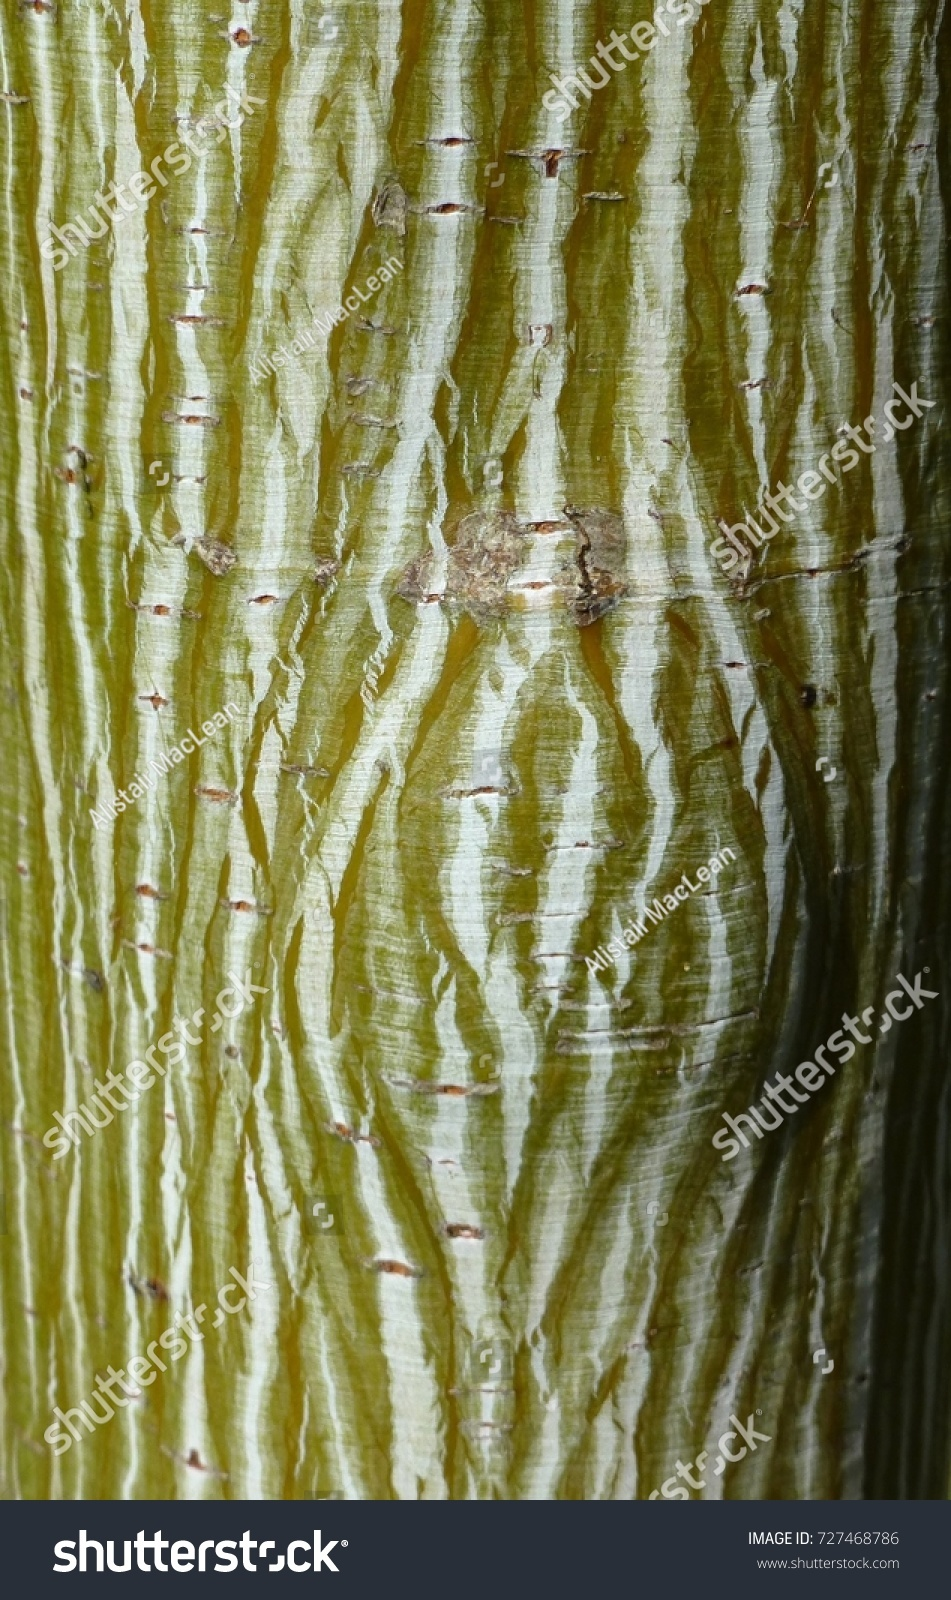 Lined Textured Bark Acer Davidii Viper Stock Photo (Download Now ...